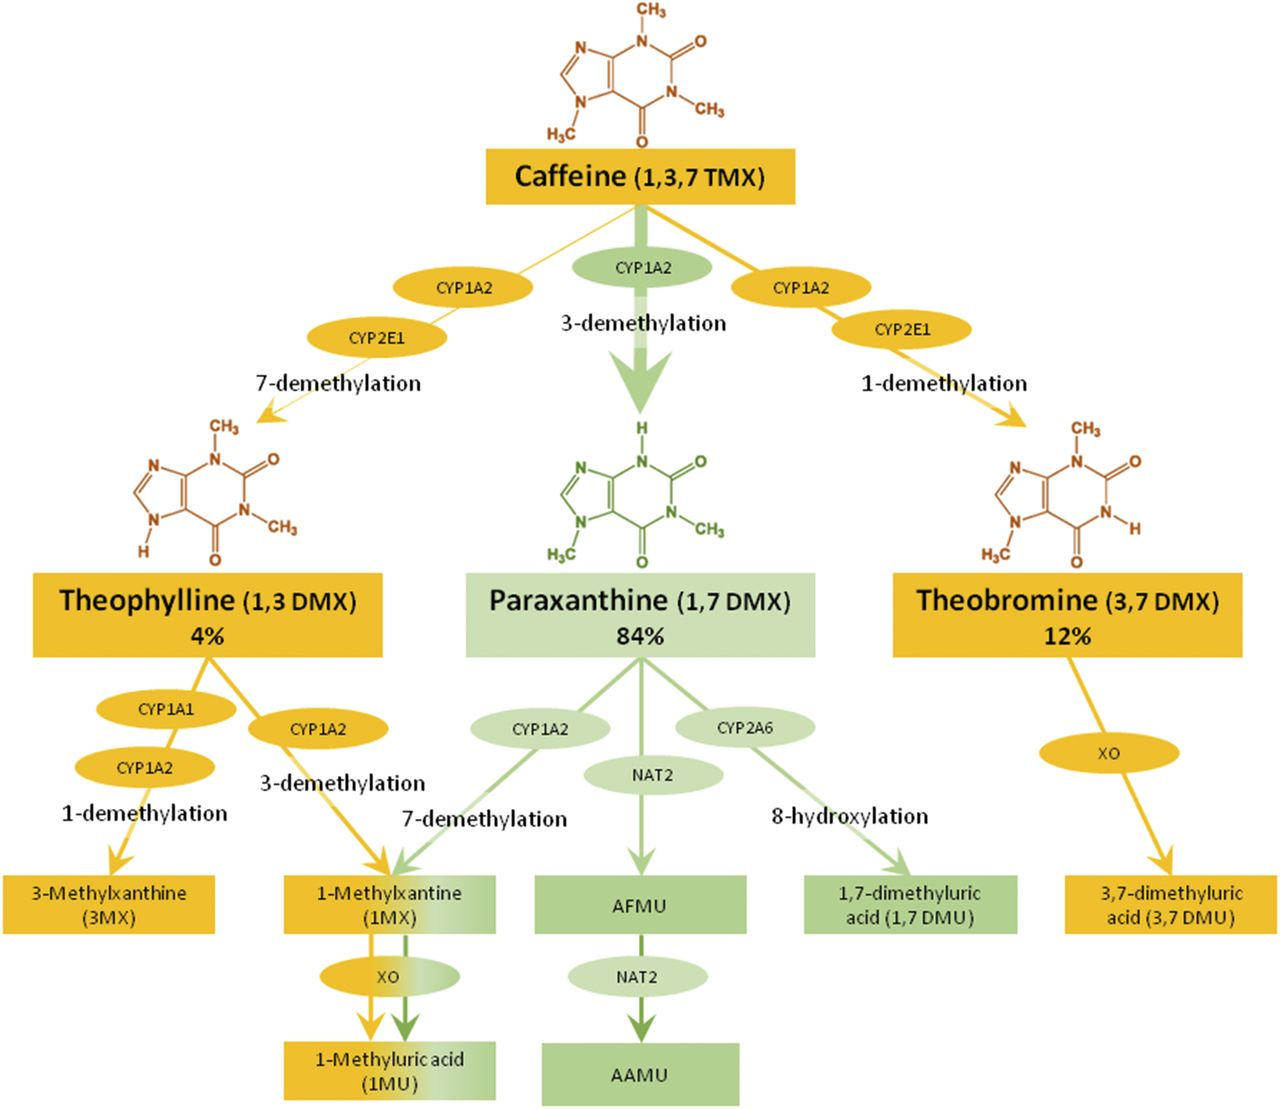 Interindividual Differences in Caffeine Metabolism and